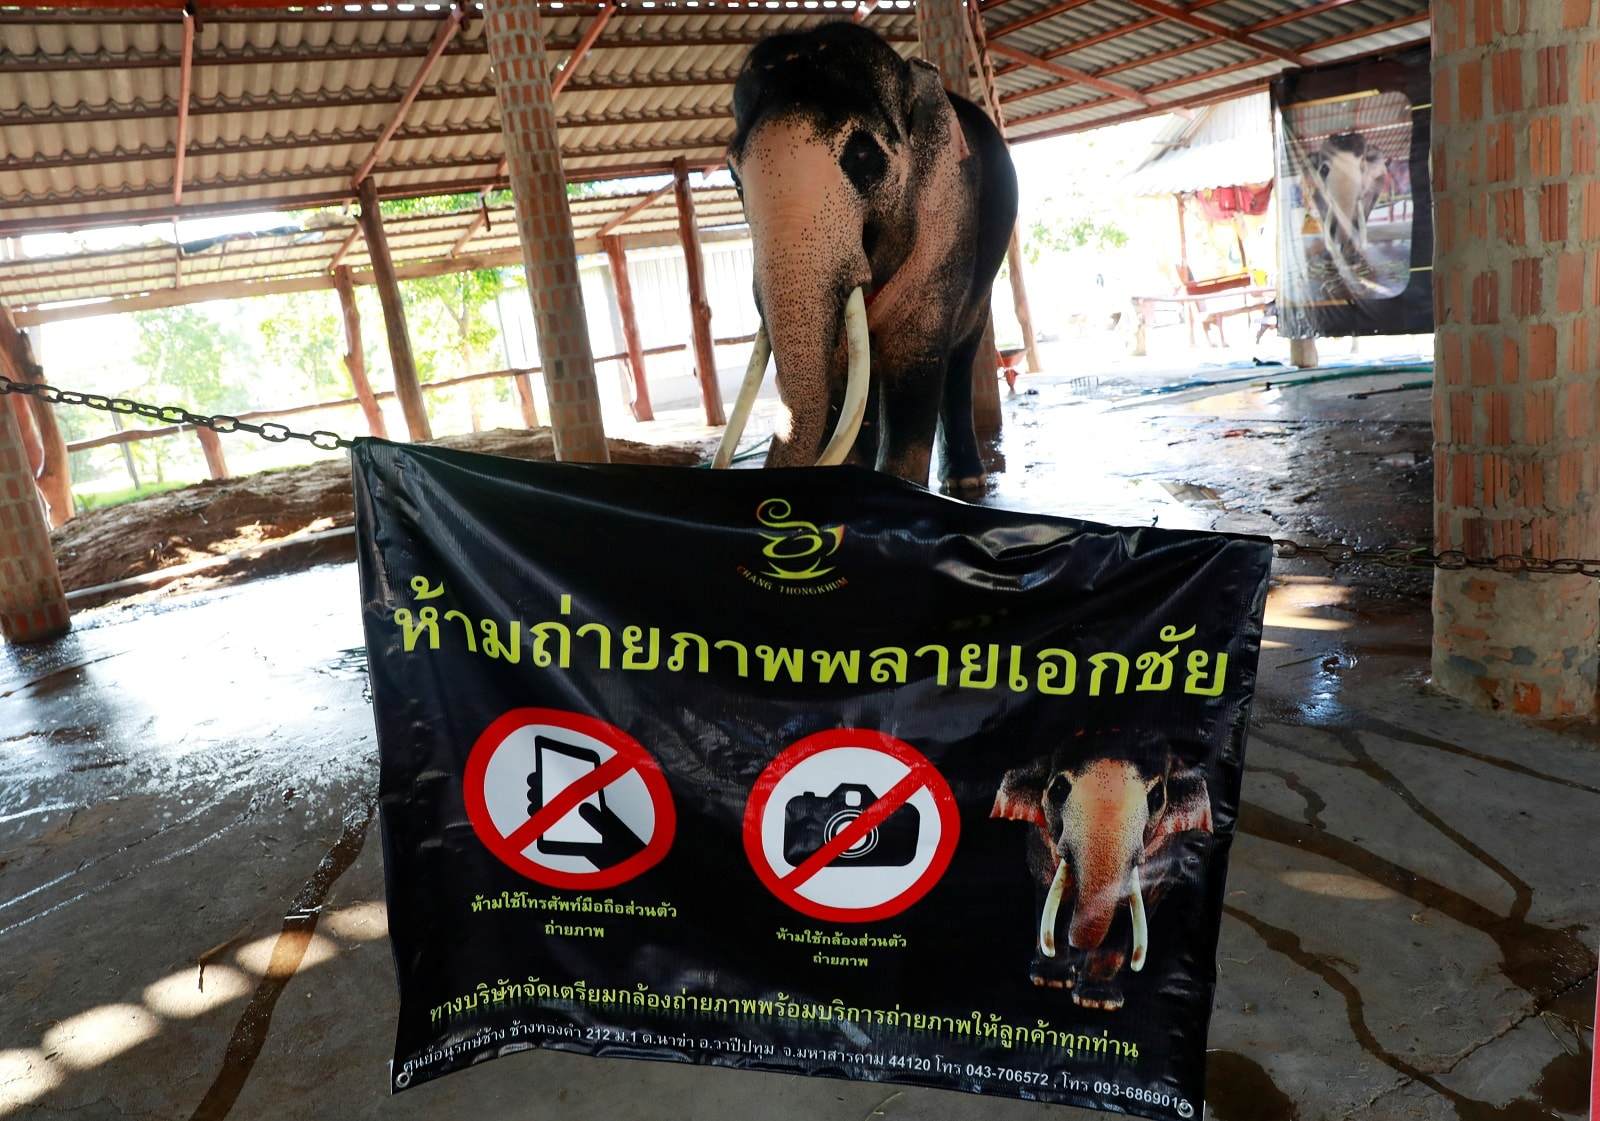 Plai Ekachai, 33 is seen in Maha Sarakham, Thailand April 25, 2019. The sign in front of him reportedly reads no photography. REUTERS/Soe Zeya Tun